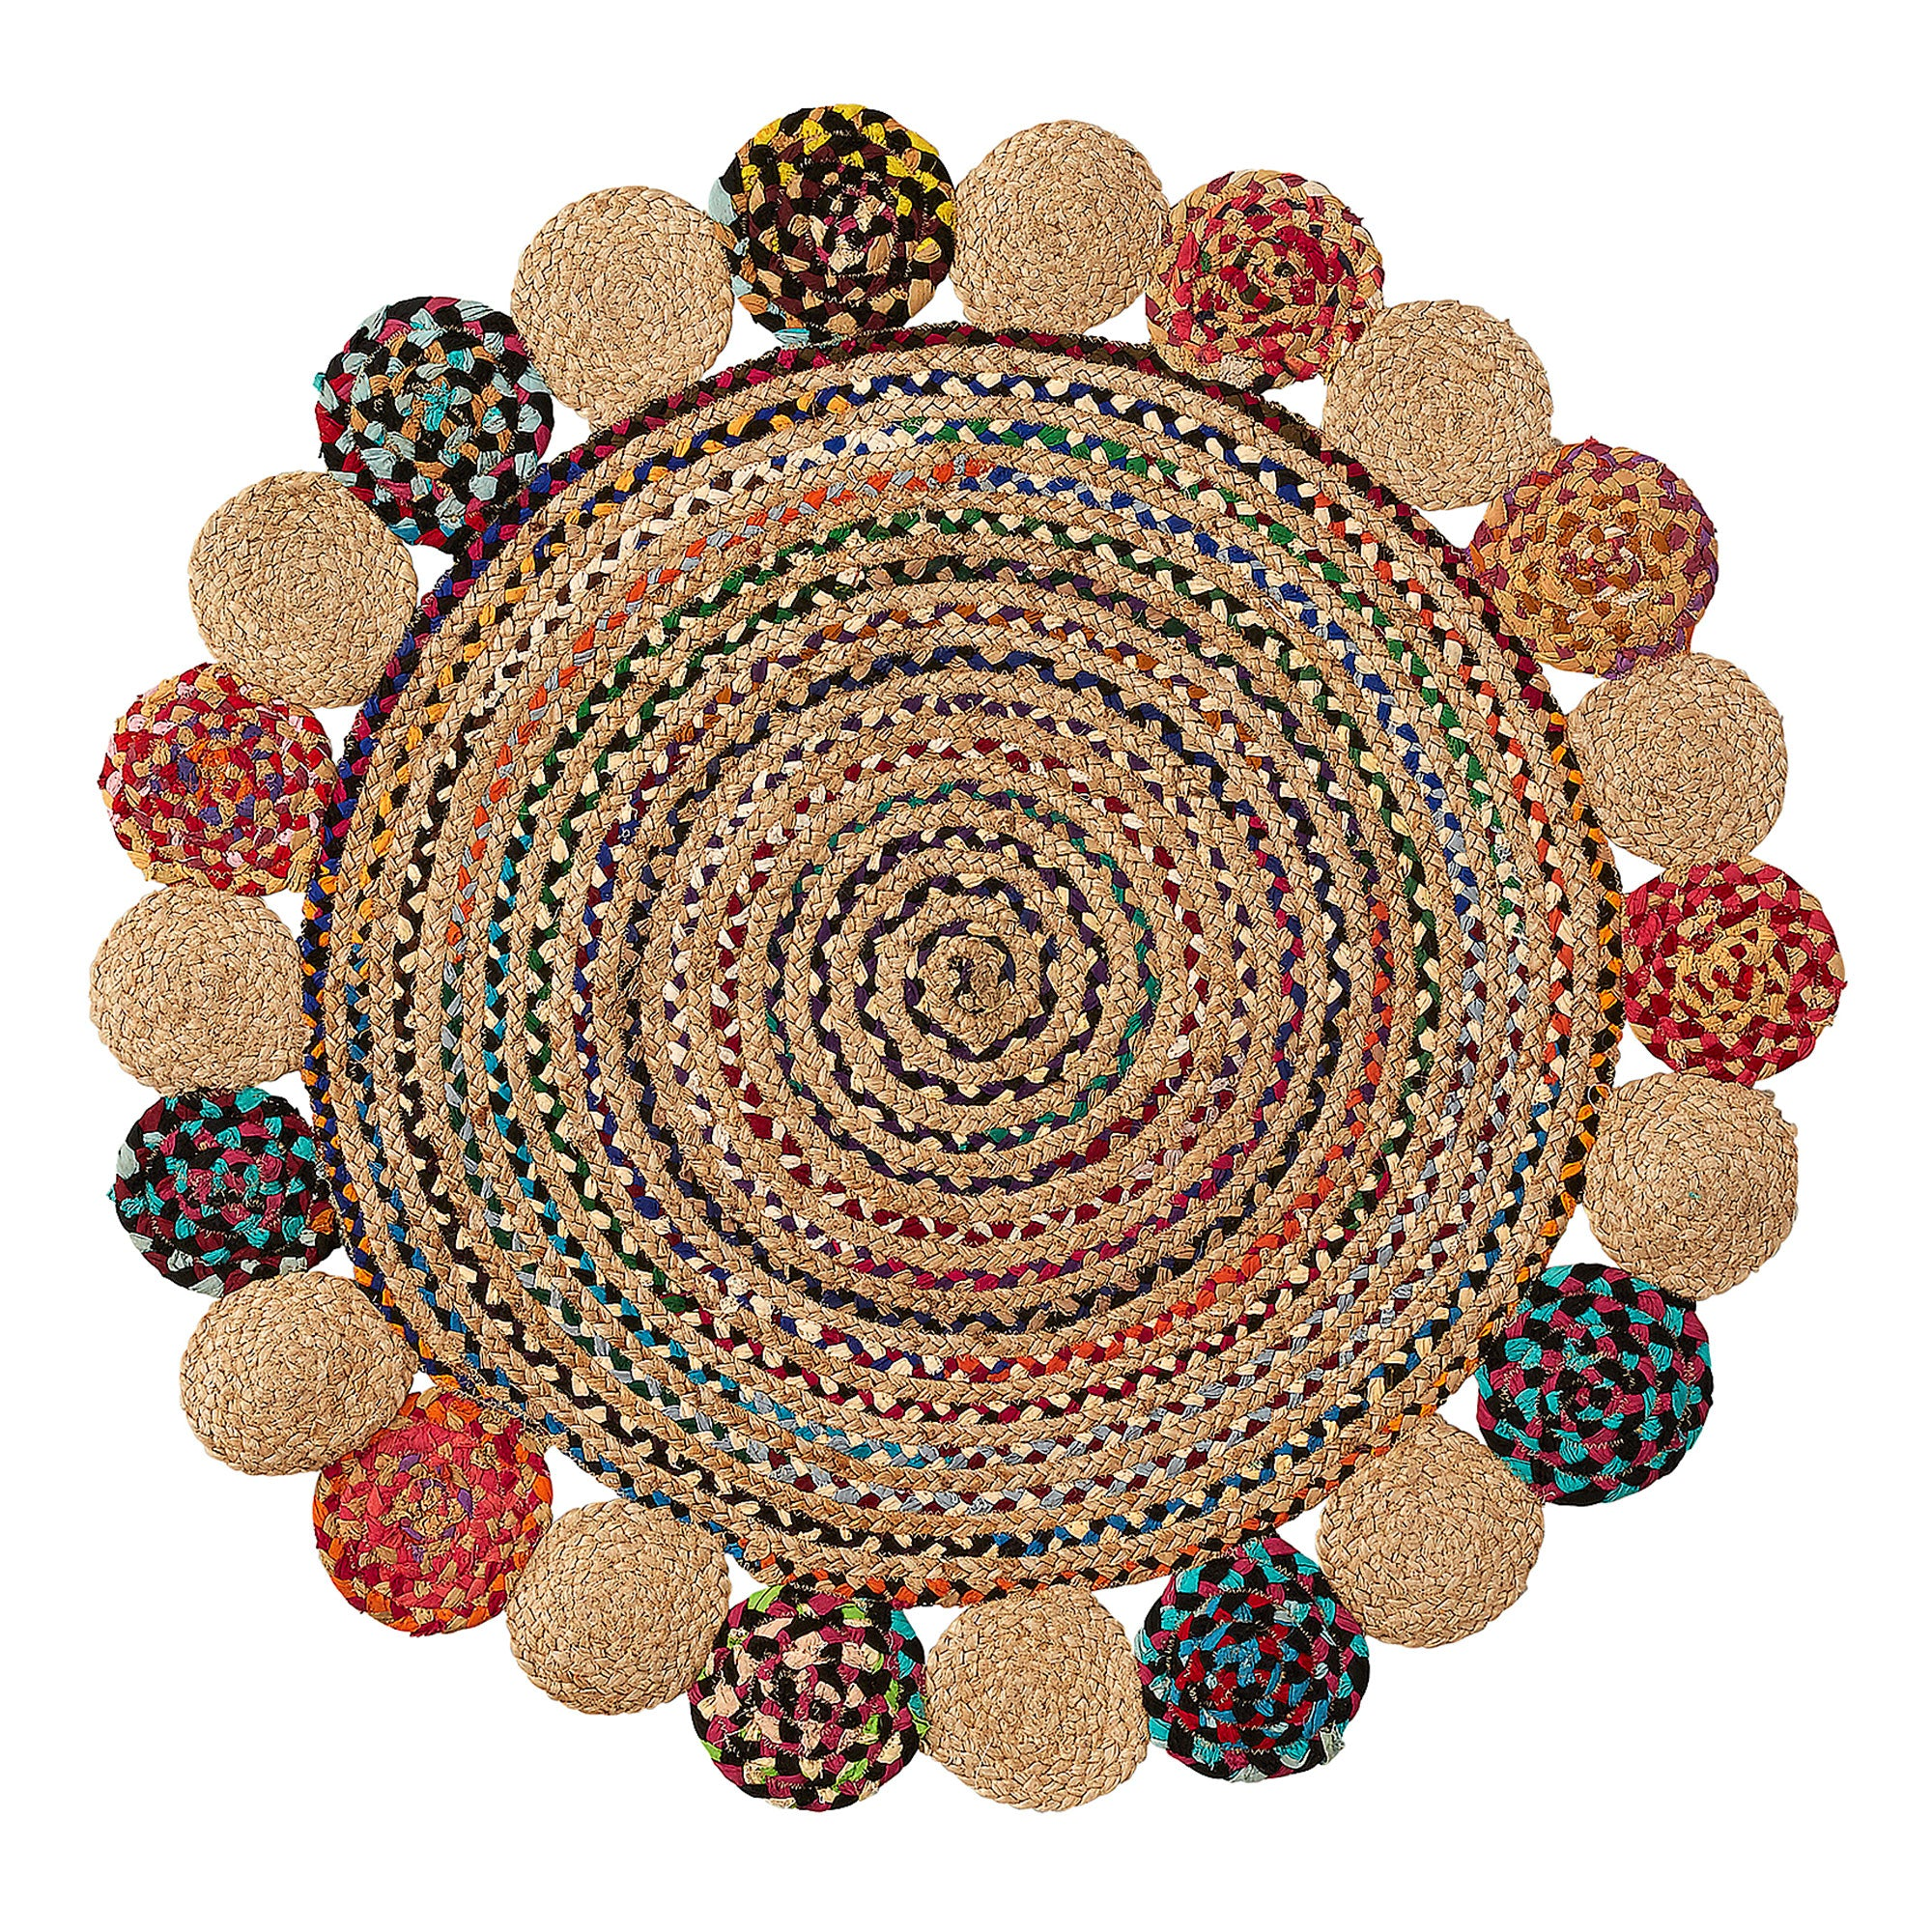 Lilly-May Round Rug - Natural Jute & Cotton Spiral 100cm diameter, Rug - Home-Buy Interiors